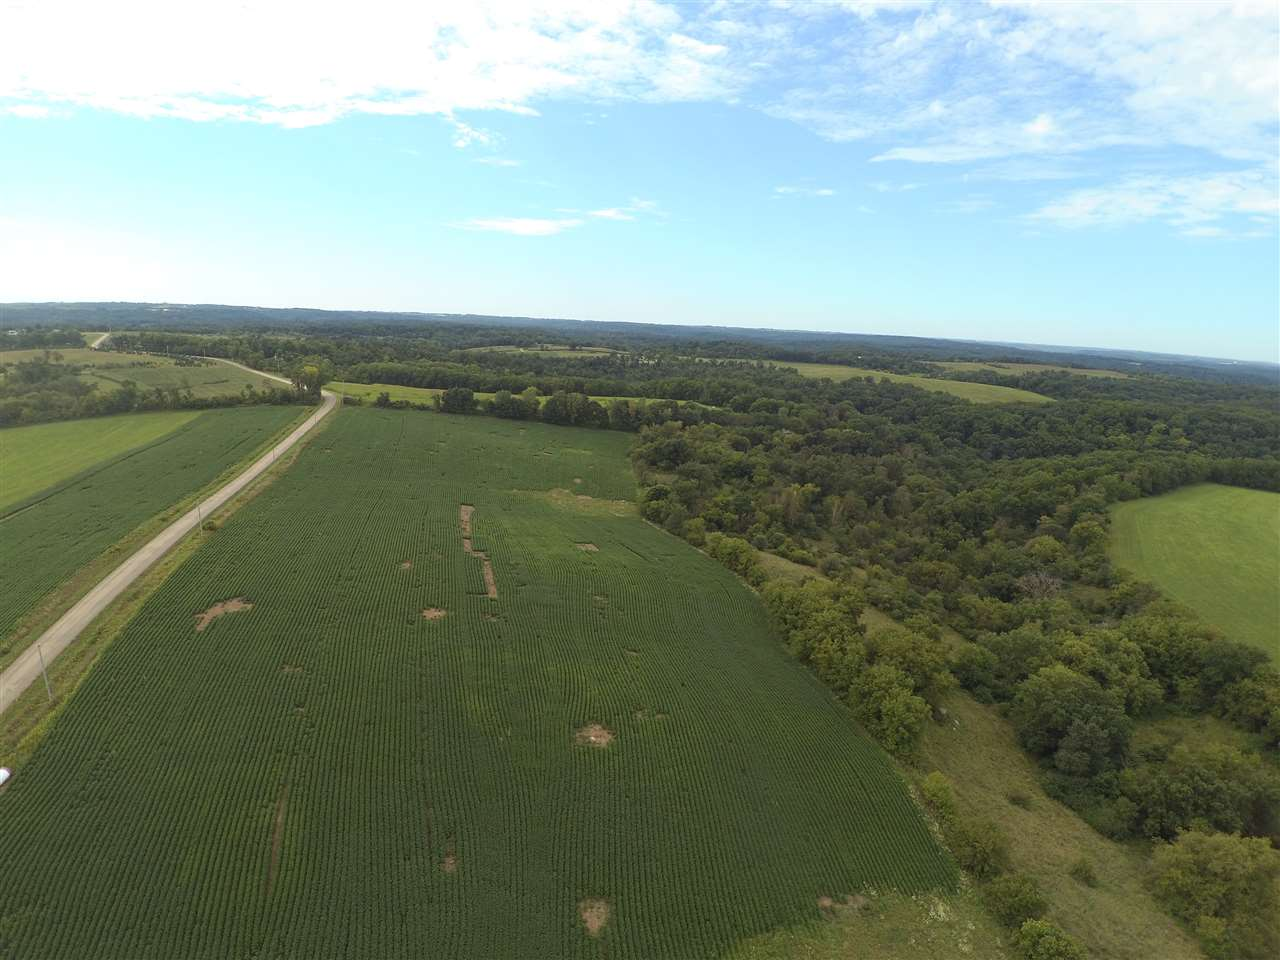 9999 Blue Ridge Rd, Arena, Wisconsin 53503, ,Lots & Acreage,For Sale,Blue Ridge Rd,1875138